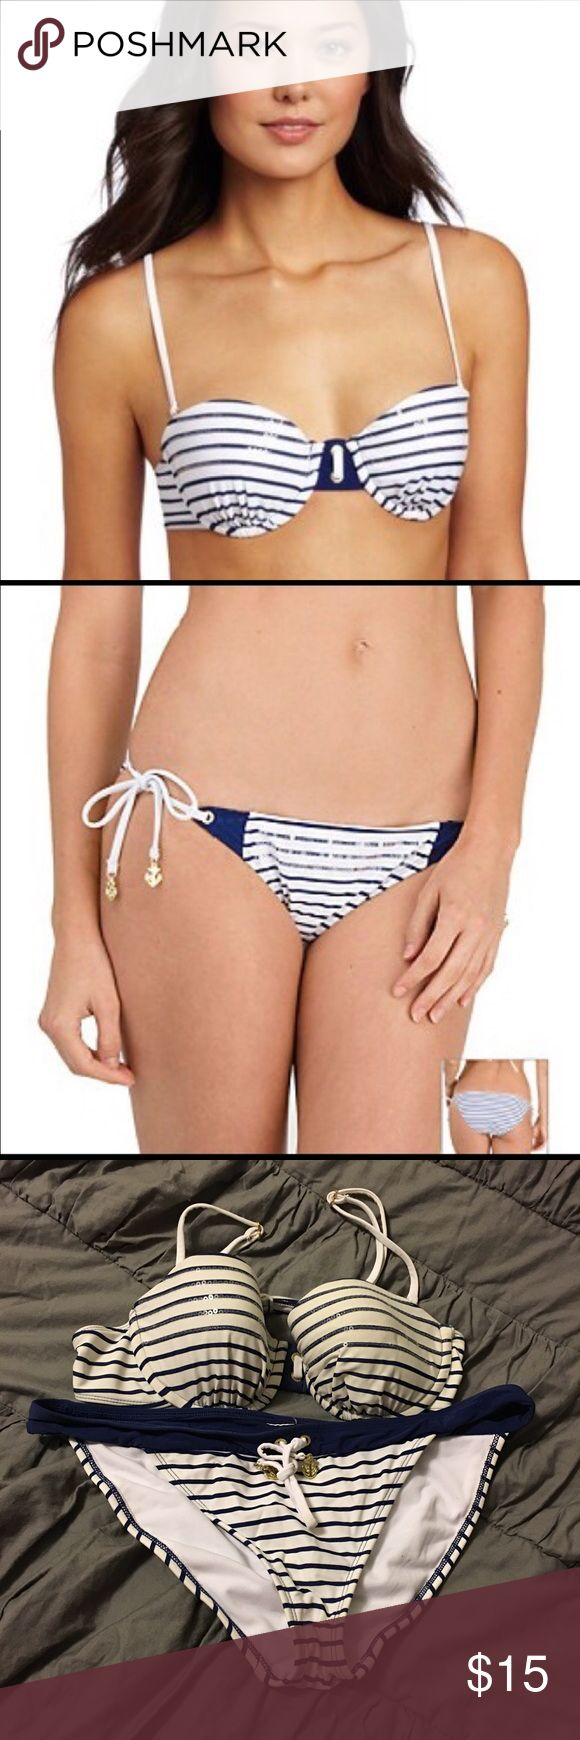 Blue and White Sperry Bikini Blue and White Stripe Sperry Bikini. I bought it used. I personally never wore it. It was a little too big on me :(. It looks like it has a little fading from maybe a river. Still a very beautiful swimsuit with a lot of love to give!! If you have any questions please ask or feel free to make an offer!! Sperry Top-Sider Swim Bikinis